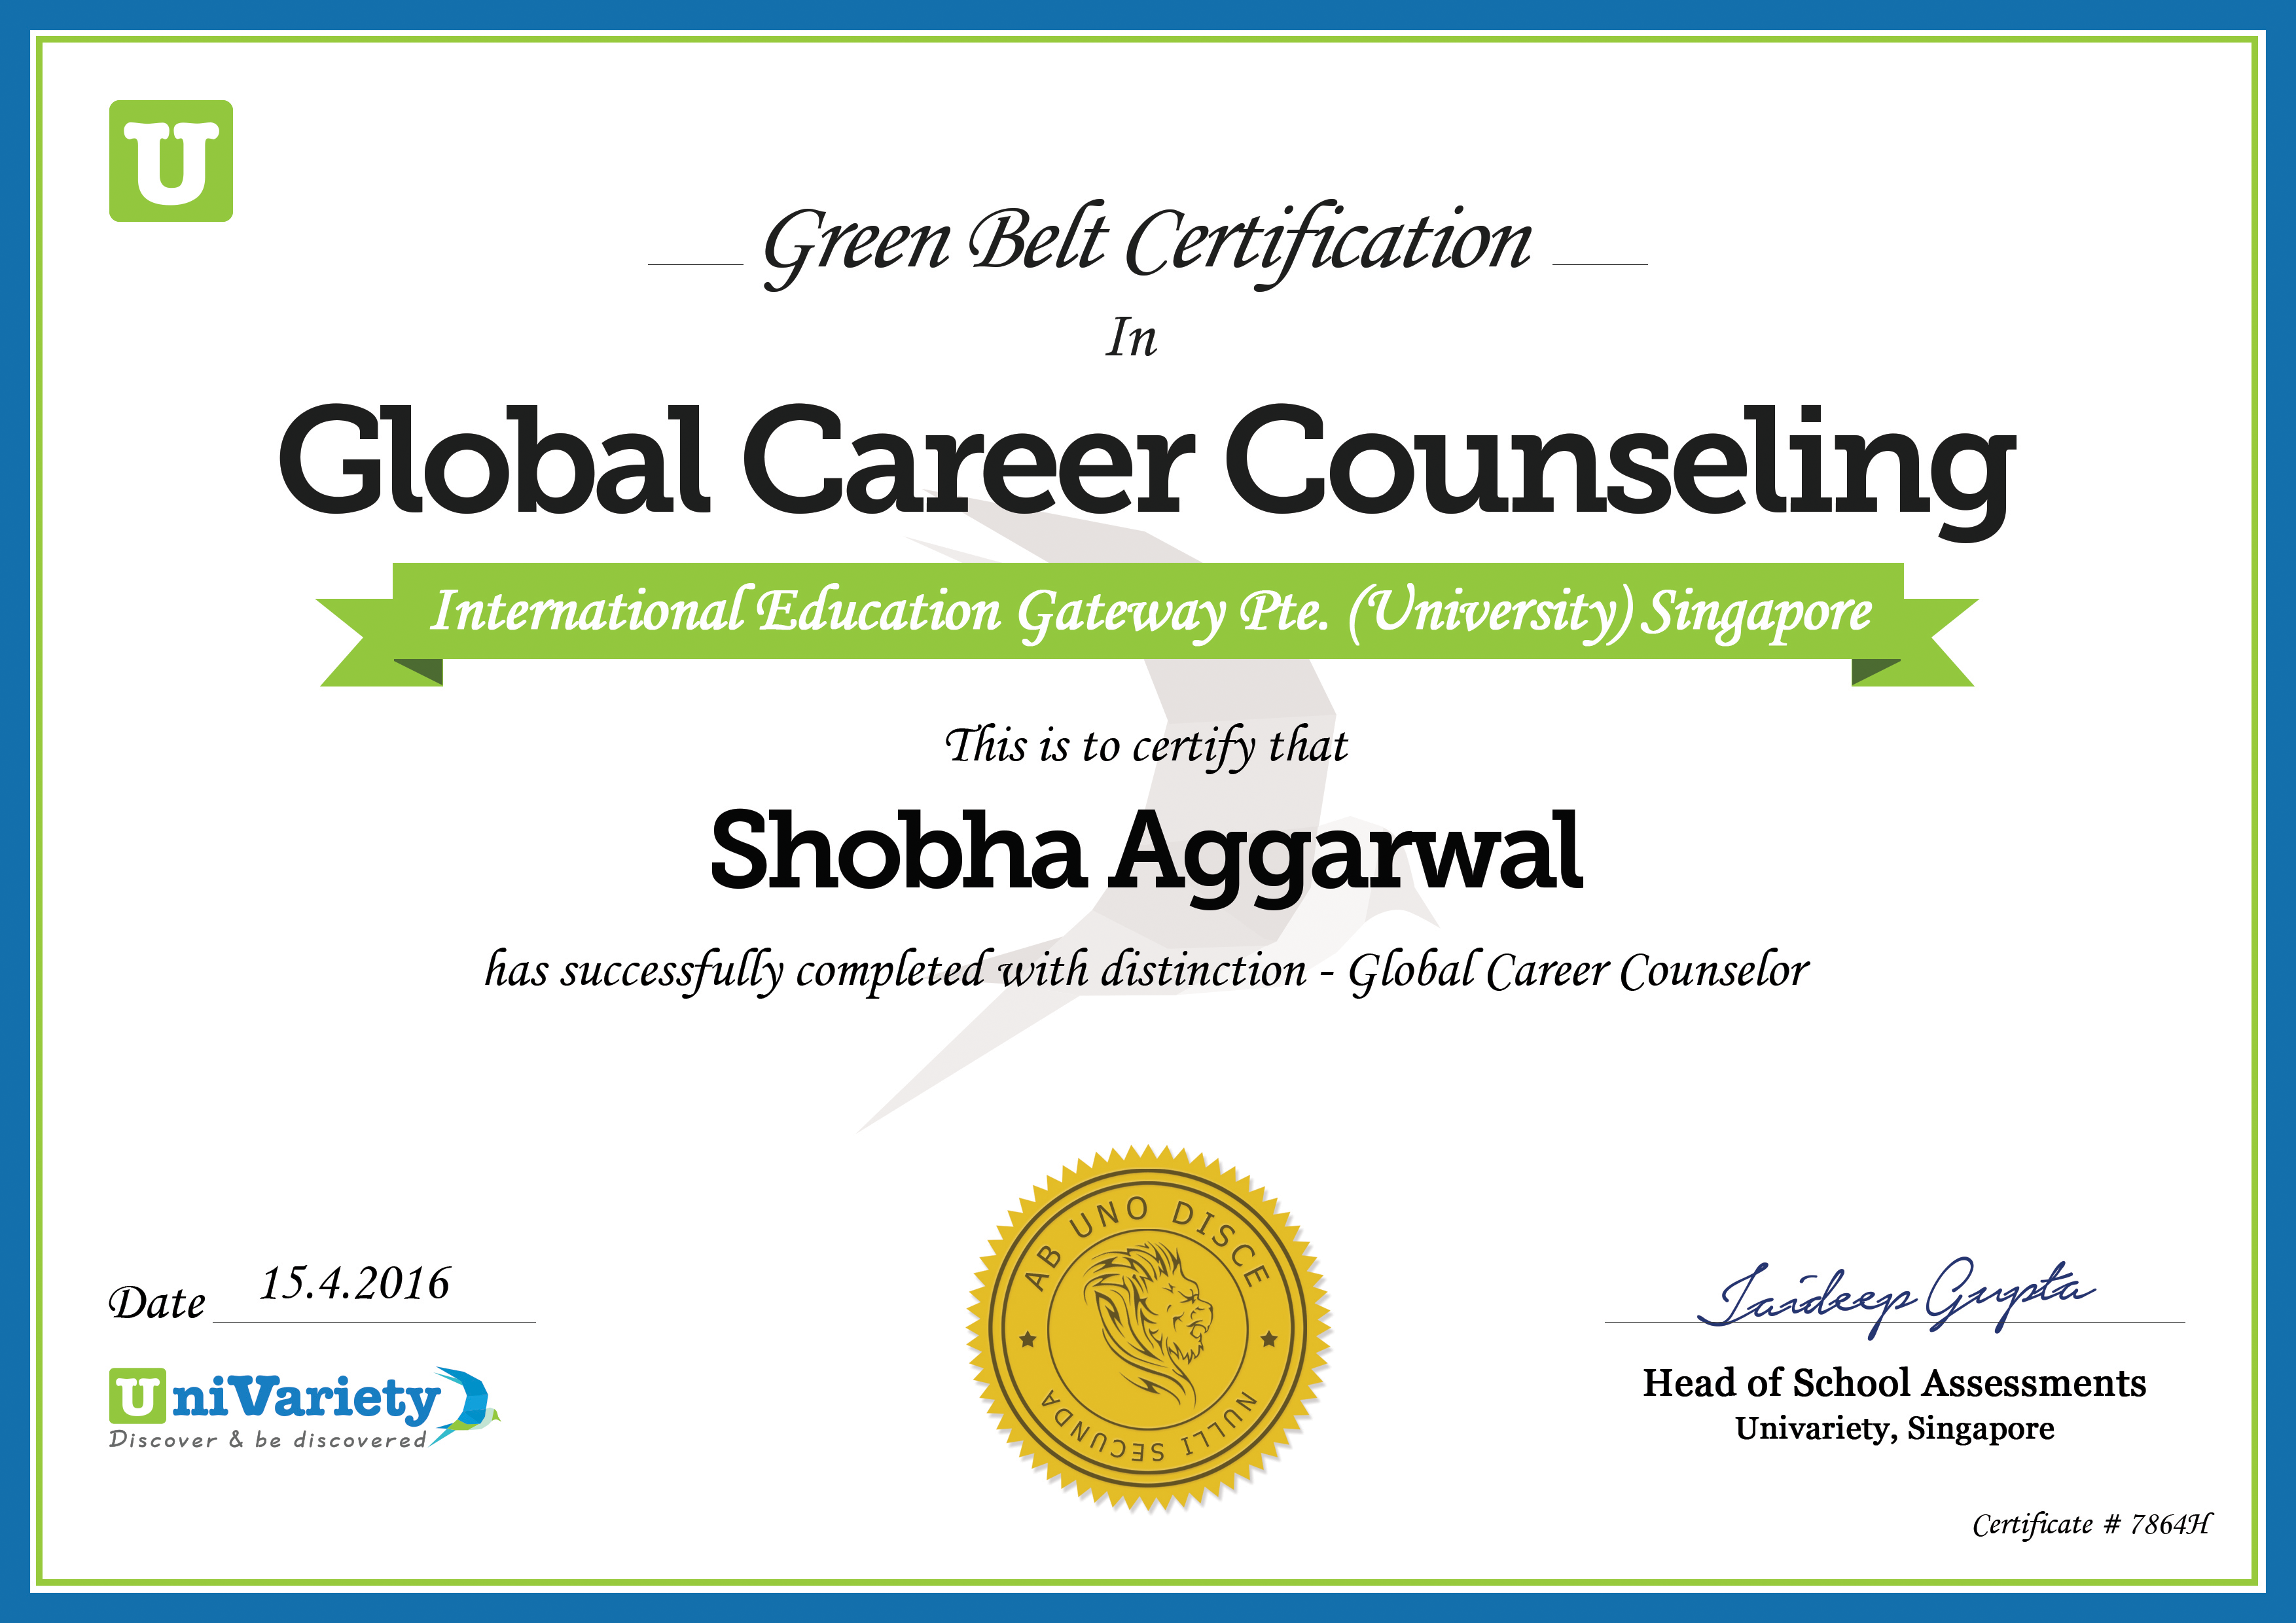 Global career counselor green belt certification univariety and ucla certificates xflitez Choice Image